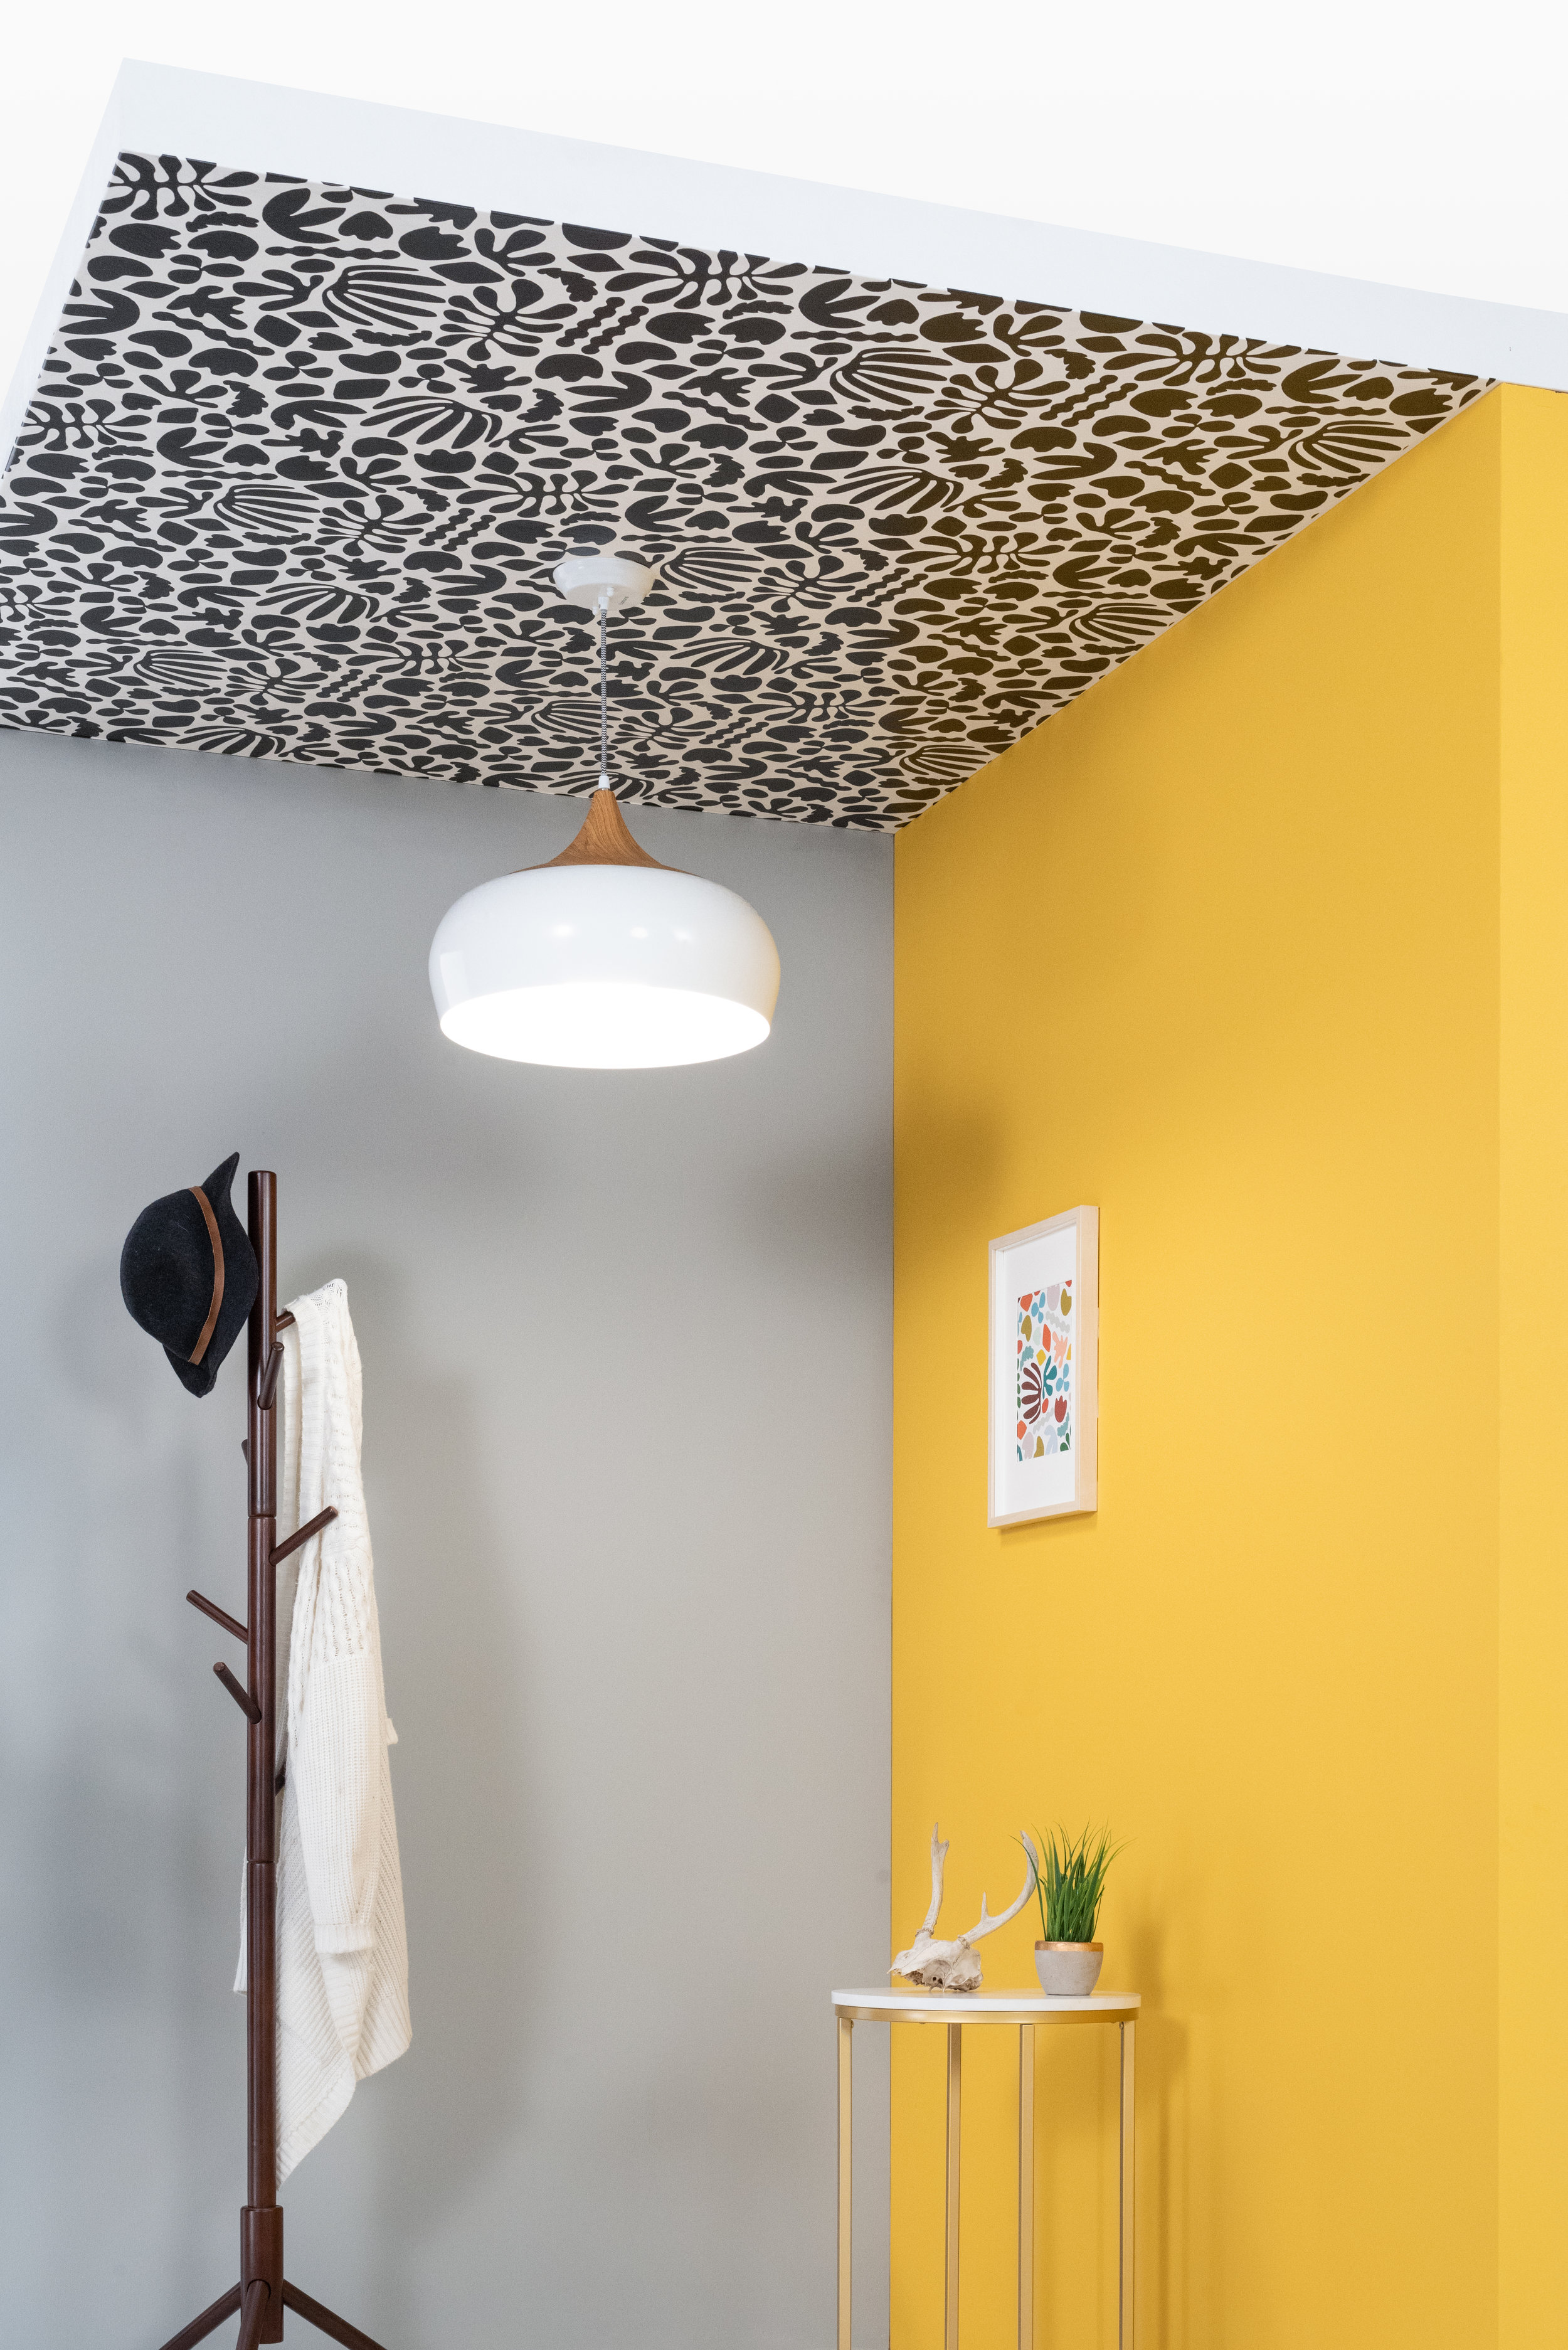 Wallpapering the Ceiling with Kate Zaremba 2019